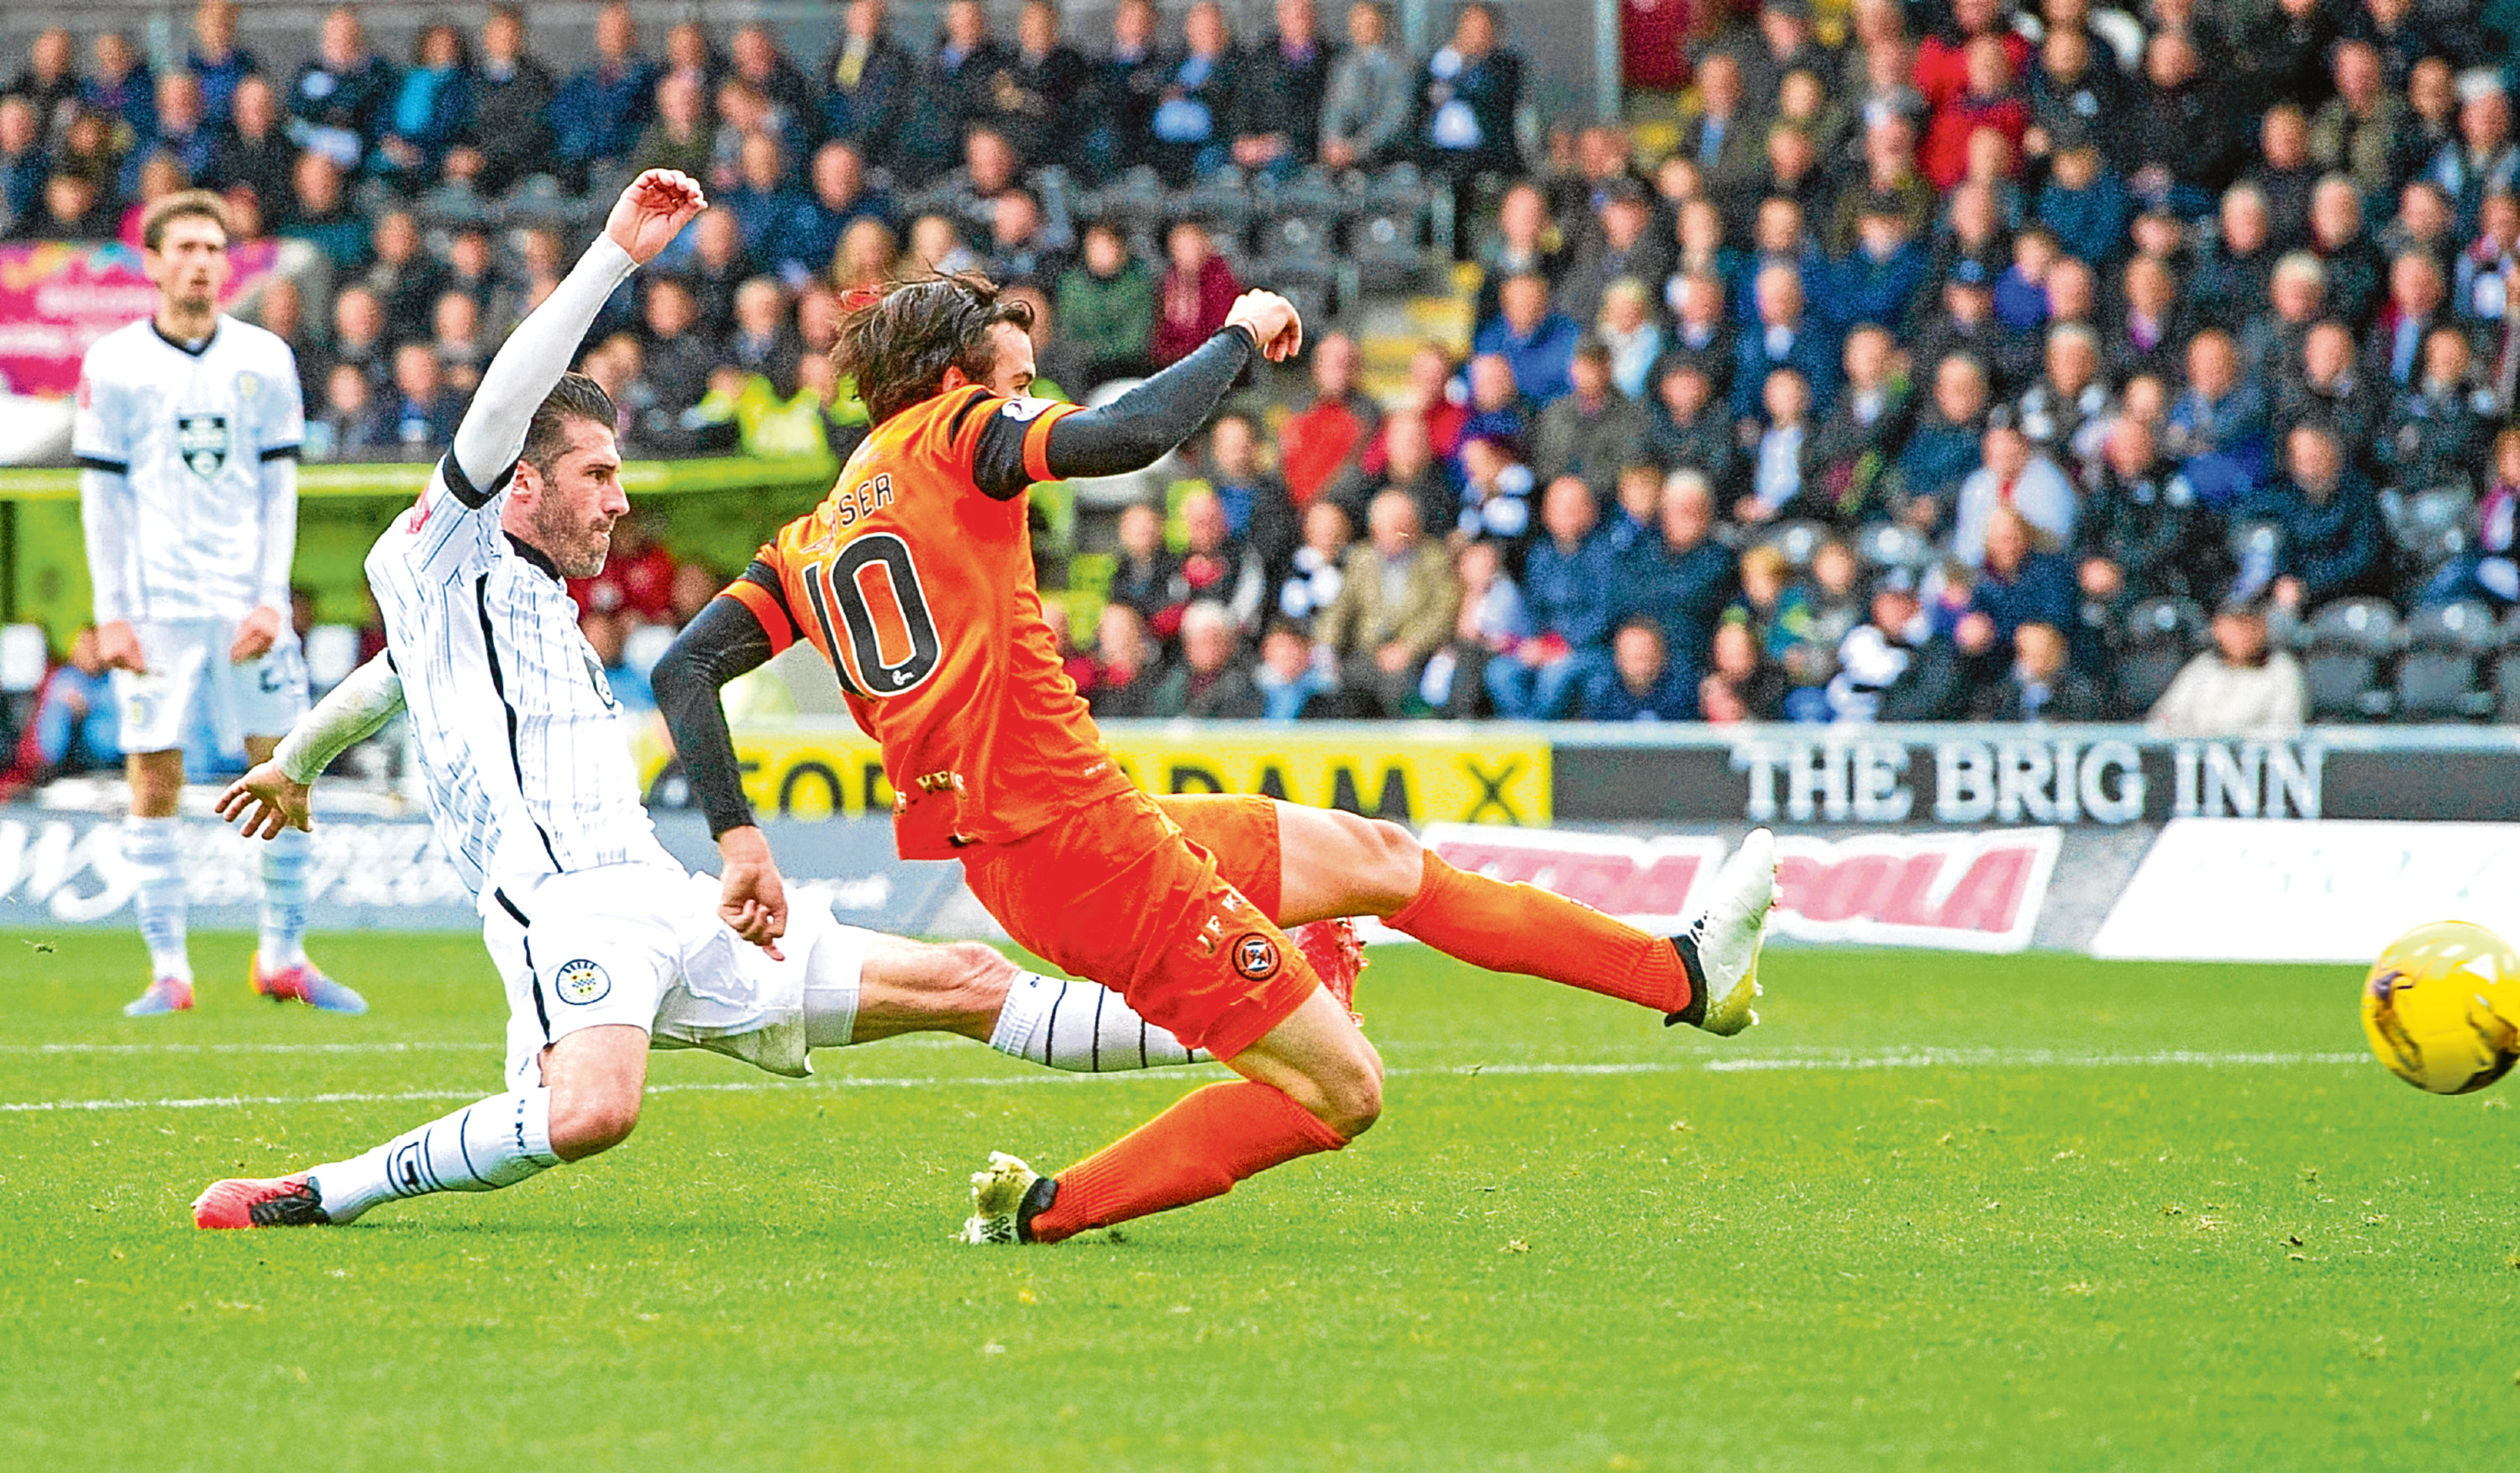 Dundee United's Scott Fraser slips in ahead of St Mirren's Rocco Quinn to put the Tangerines in front during their 2-0 win in the Championship game at the Paisley 2021 Stadium in October.